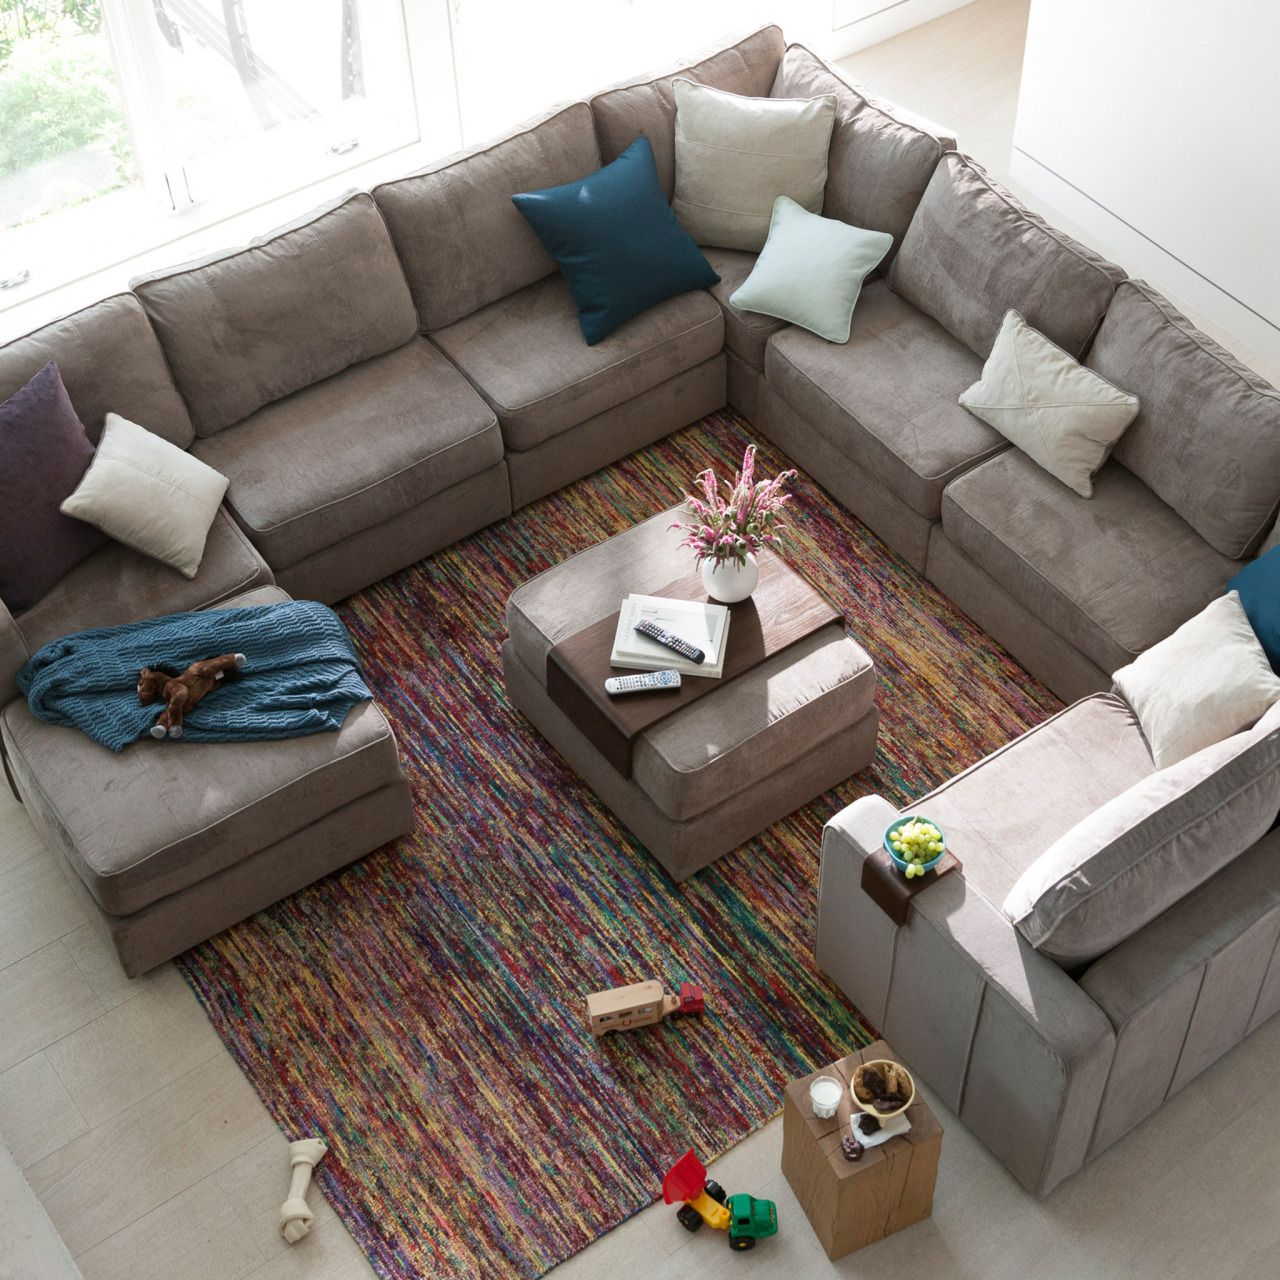 Lovesac U2014 We Make Sactionals, The Most Adaptable Couch In The Entire World  That Grows